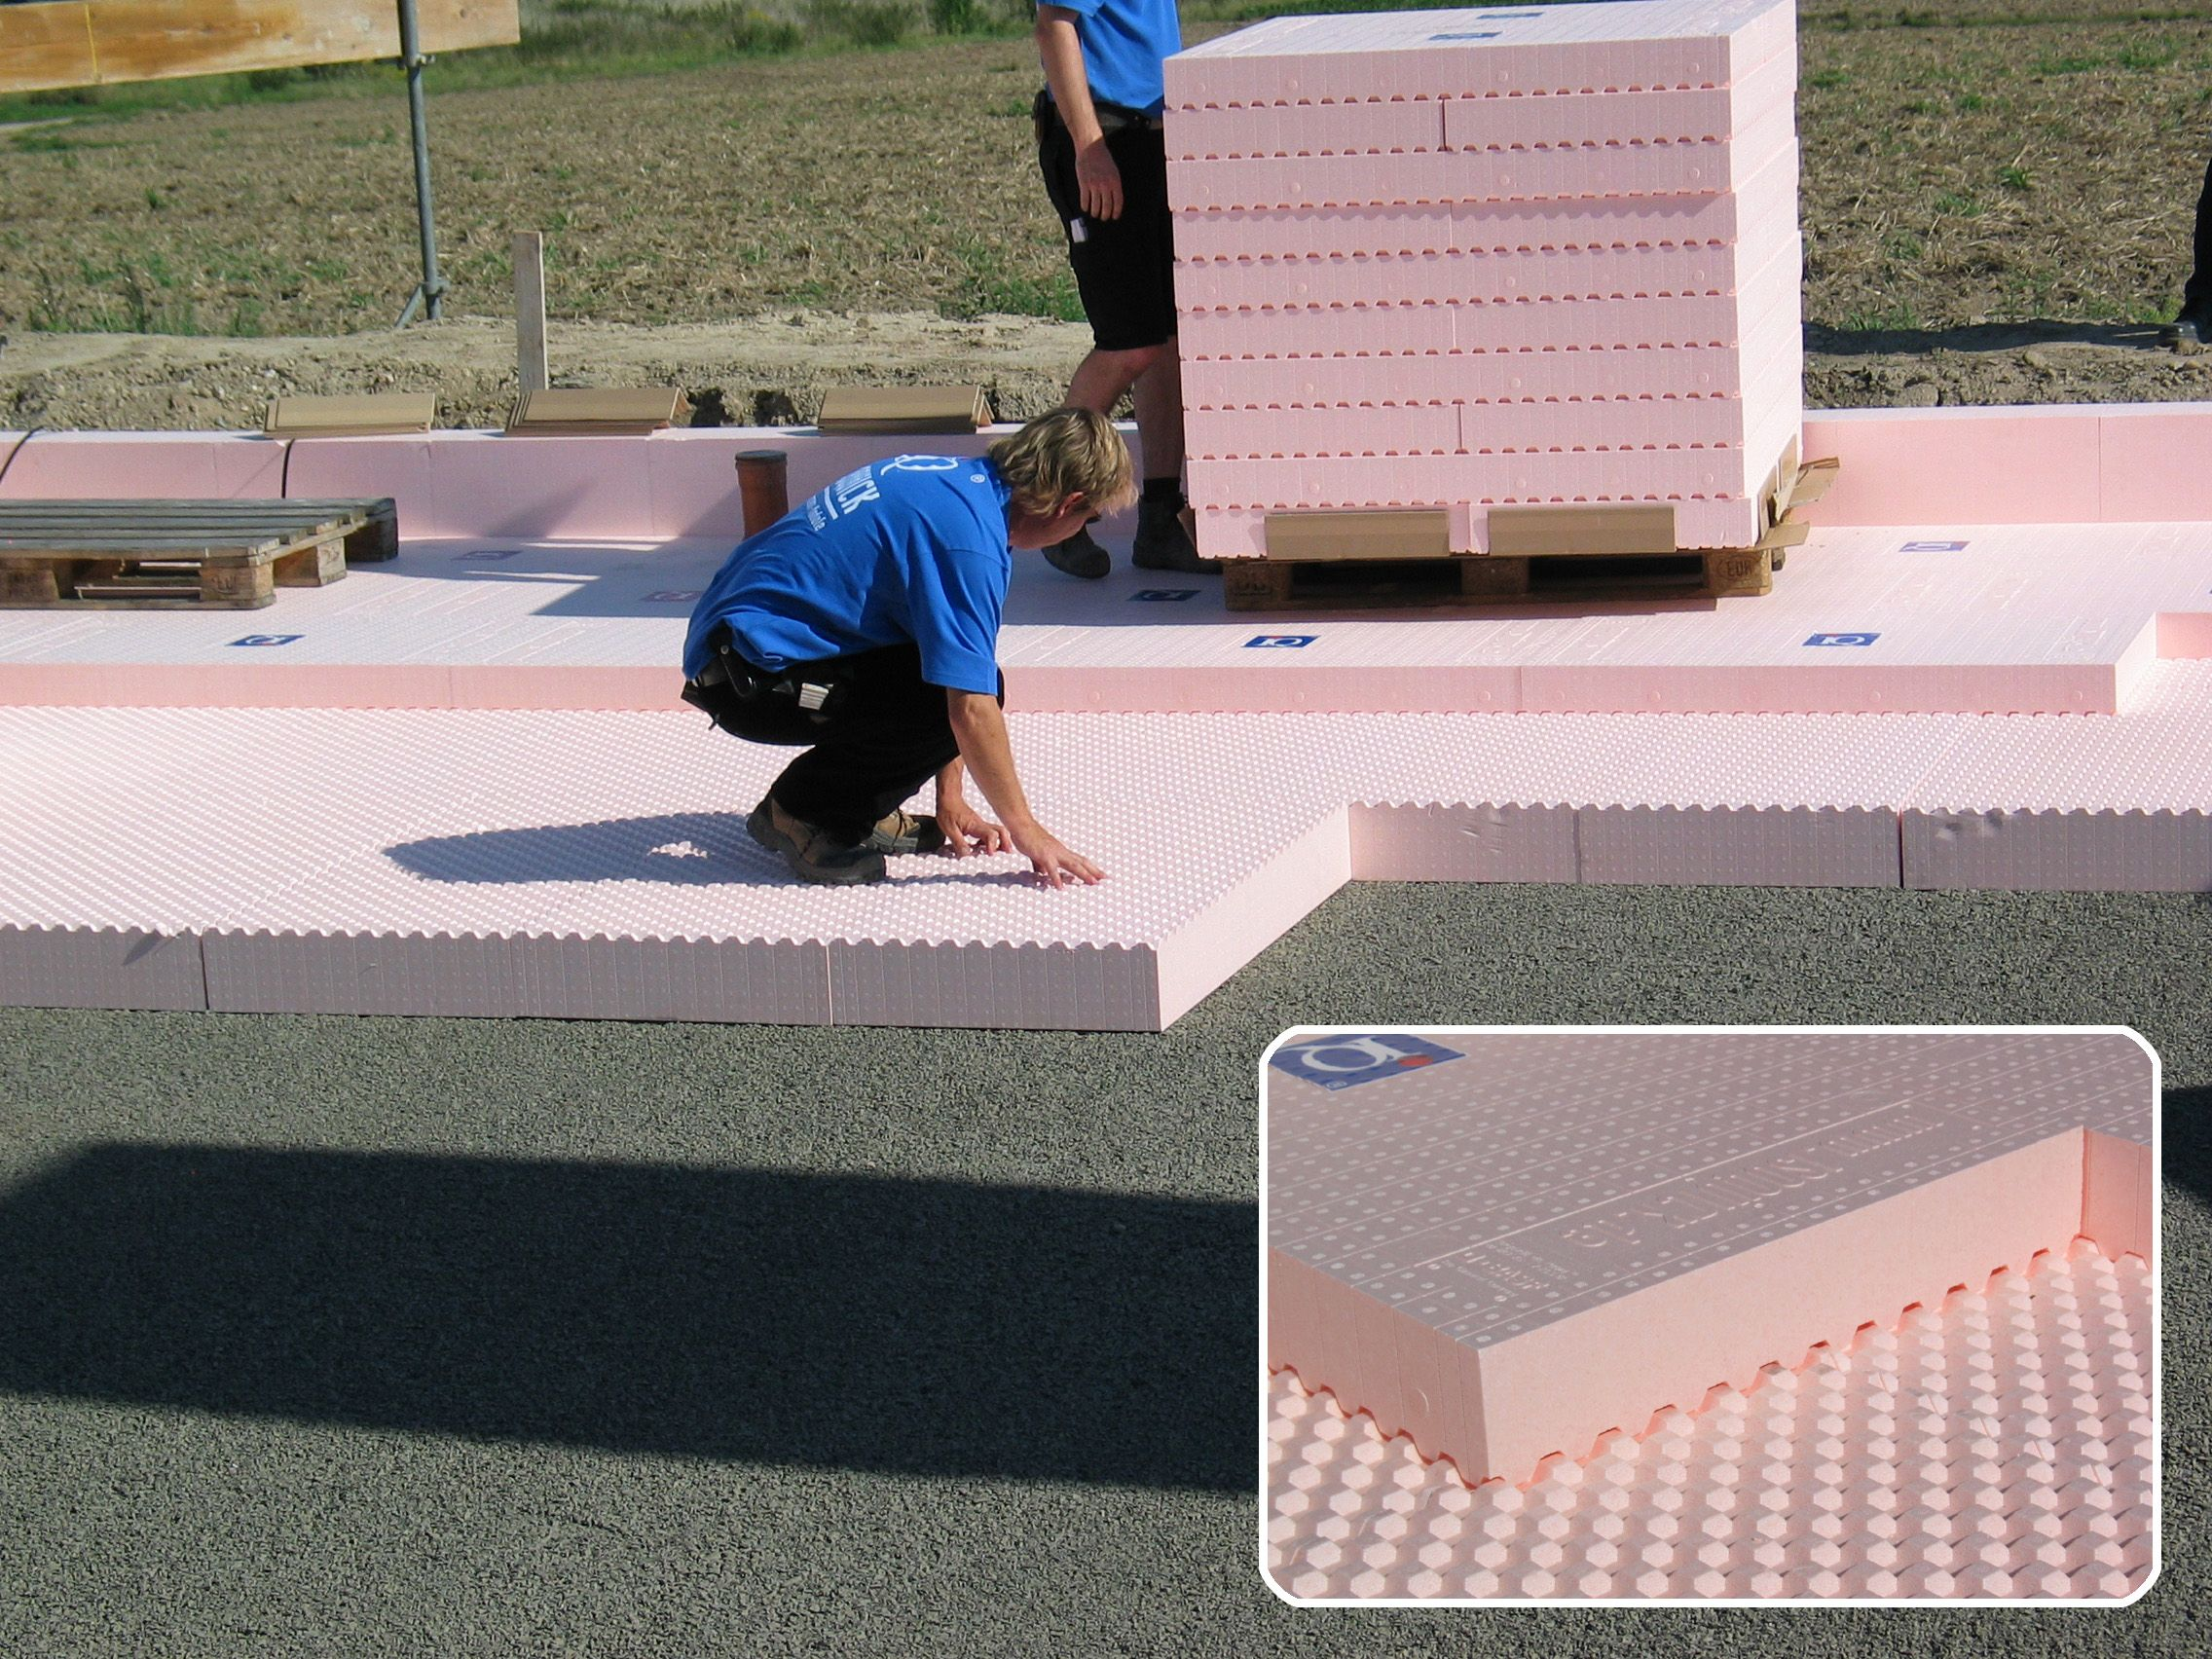 Marvelous Prefabricated Modules Made Of BASF Foam For Thermal Insulation Of The Floor  Slab